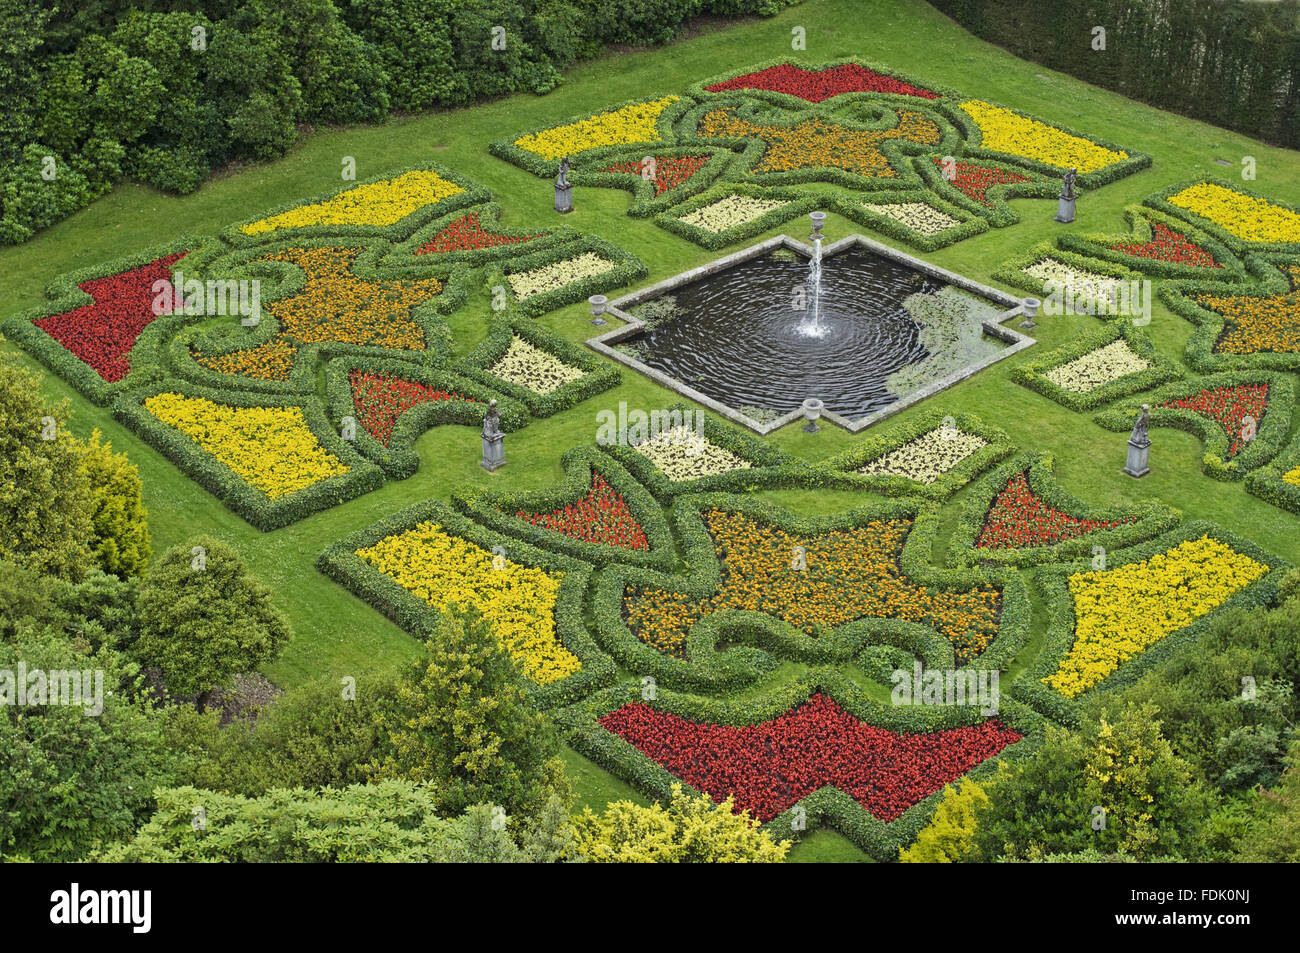 Awesome Summer Bedding In The Sunken Dutch Garden At Lyme Park, Cheshire. The Garden  Was Created In The Early Eighteenth Century But Underwent Extensive  Restoration ...